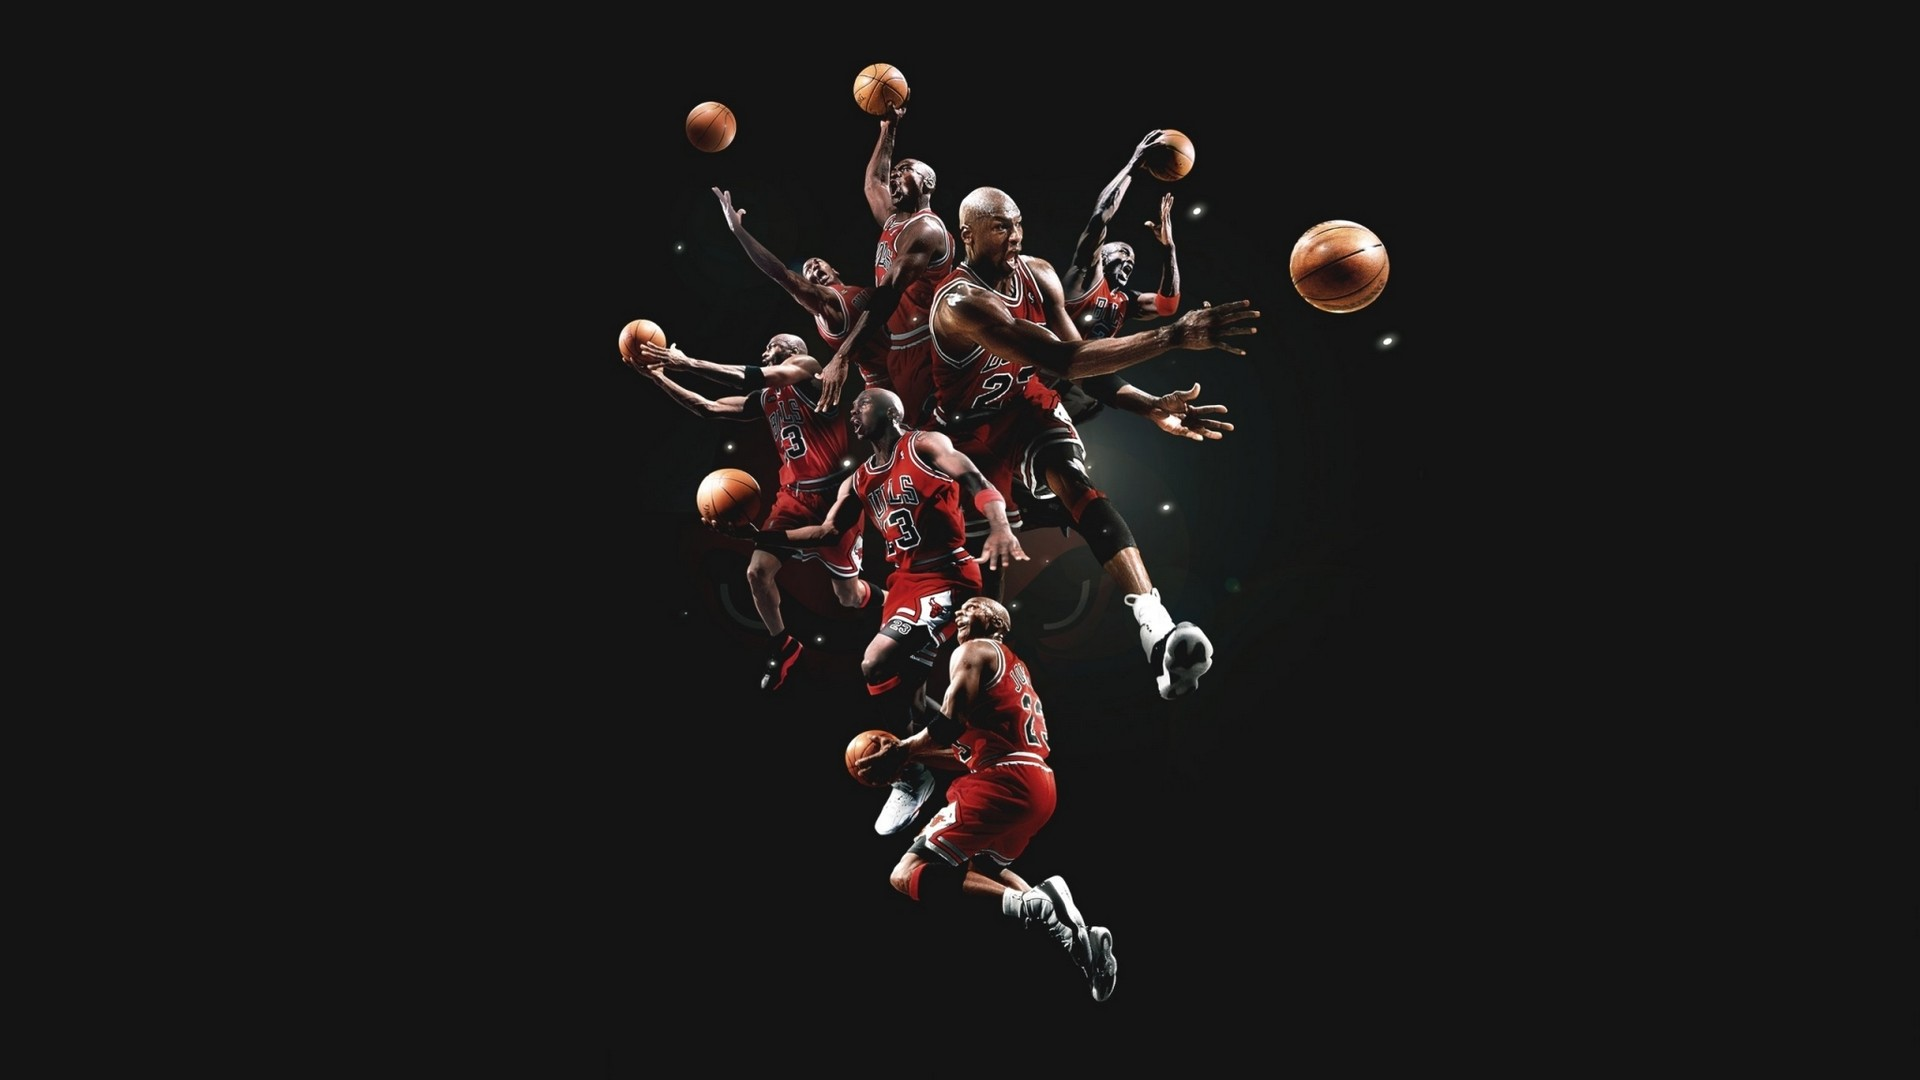 1920x1080 - Chicago Bulls HD 29